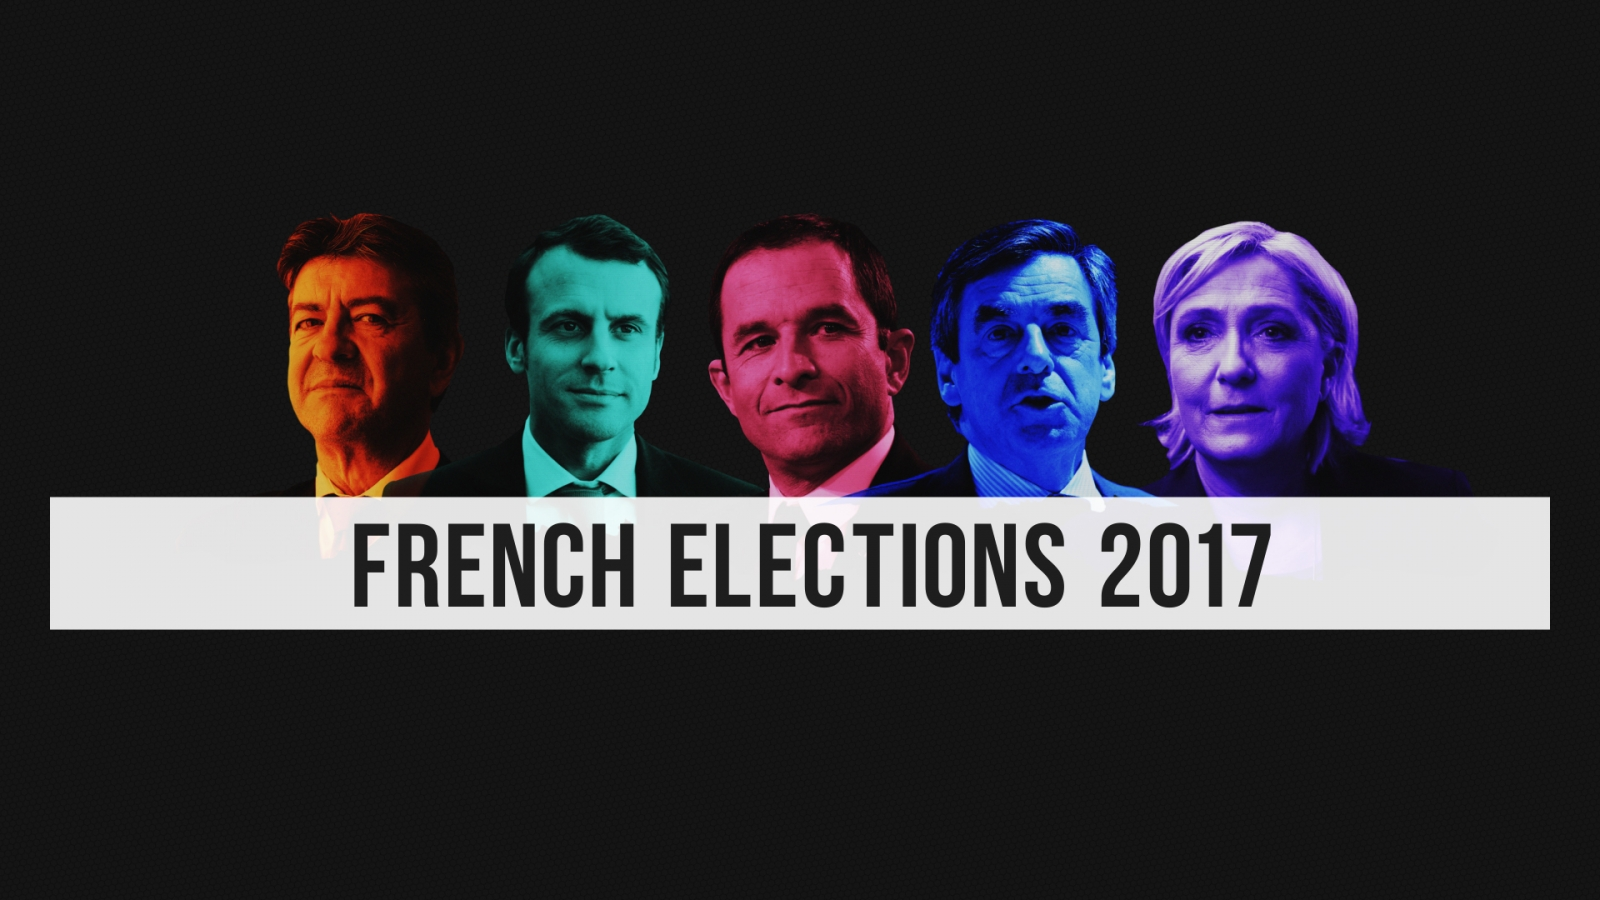 France elections 2017 live - Extreme Right French Candidate Marine Le Pen Leads Presidential Poll But Would Lose In Second Round